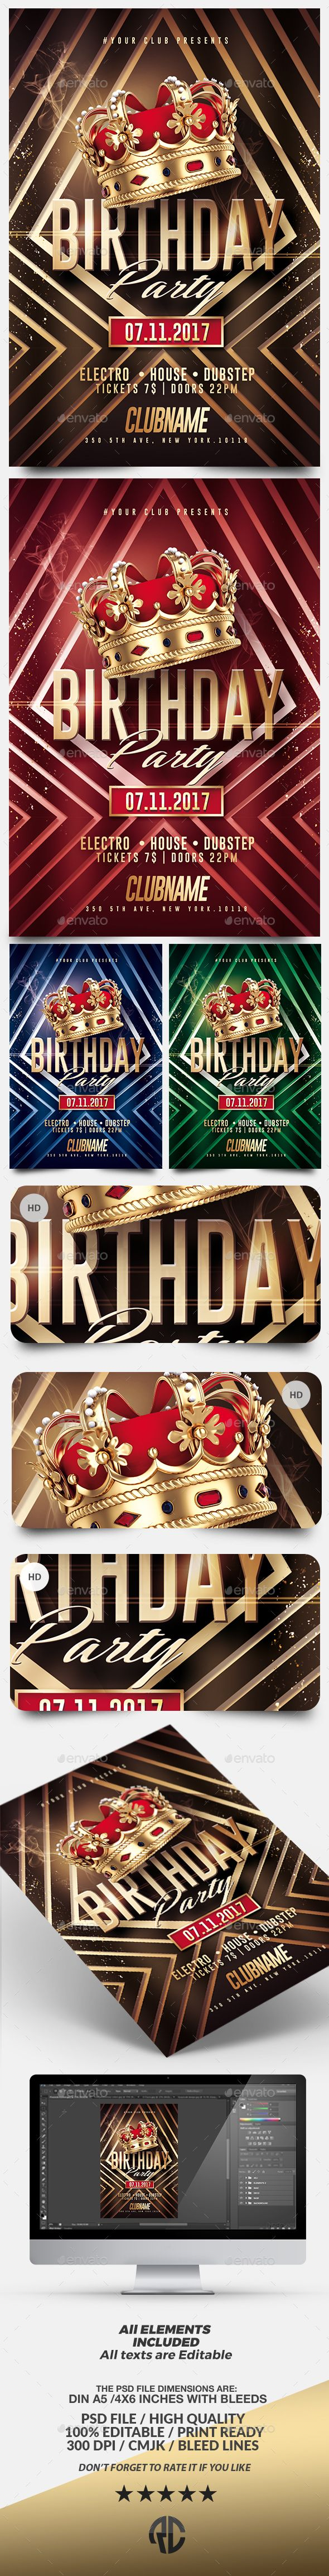 Gold Birthday | Kings Flyer Template — Photoshop PSD #nightclub #birthday • Available here → https://graphicriver.net/item/gold-birthday-kings-flyer-template/17651215?ref=pxcr